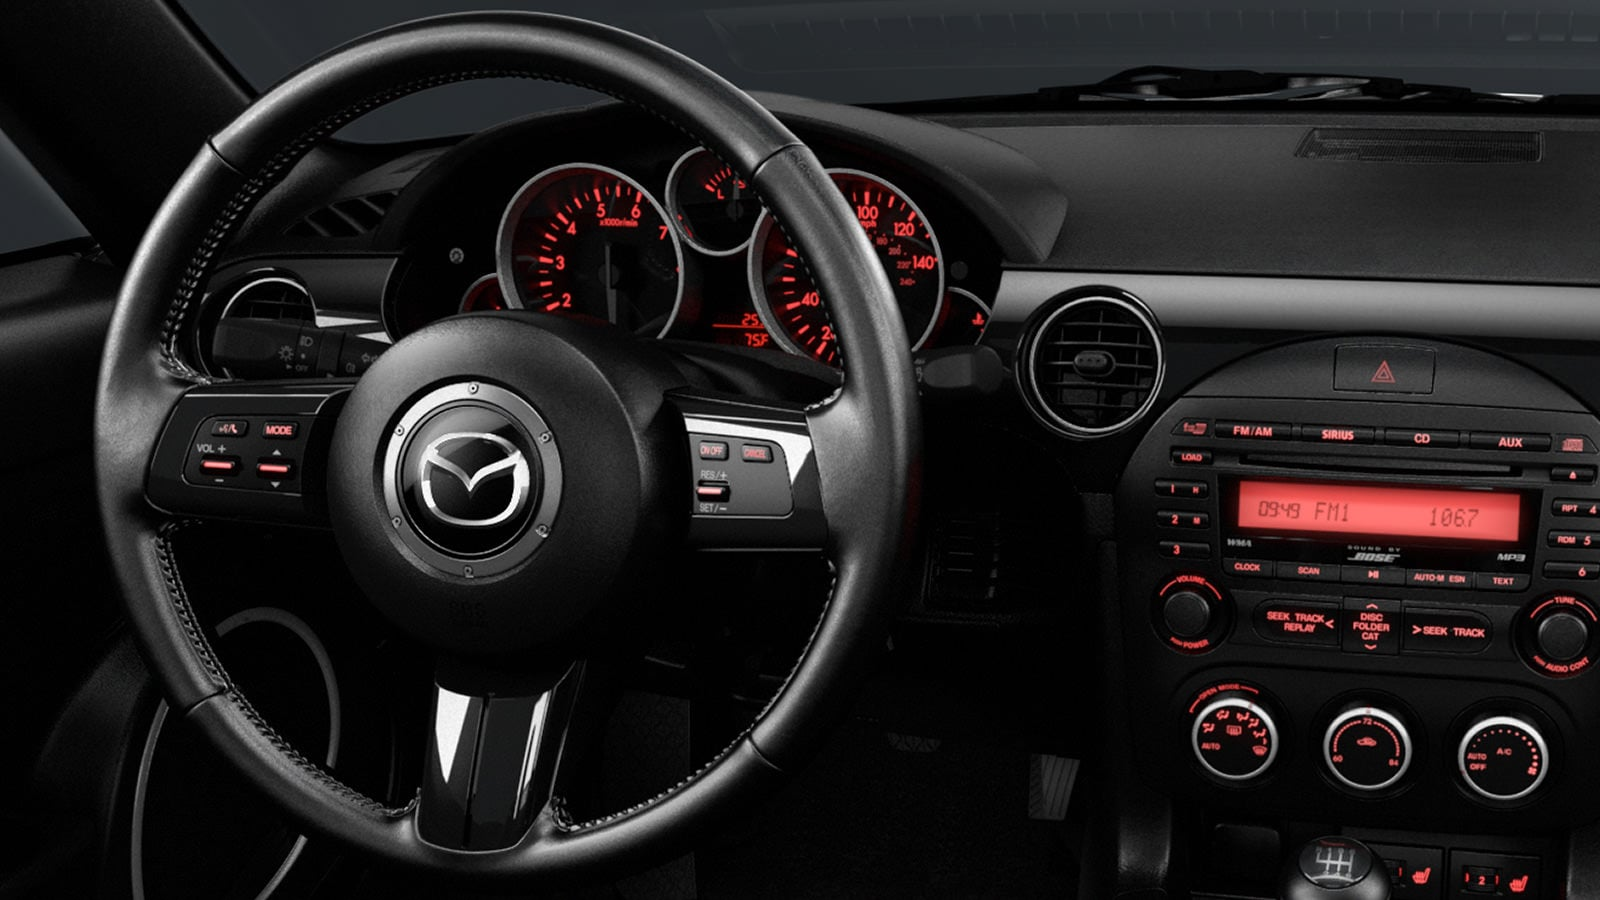 2015 Mazda MX-5 Interior Dashboard